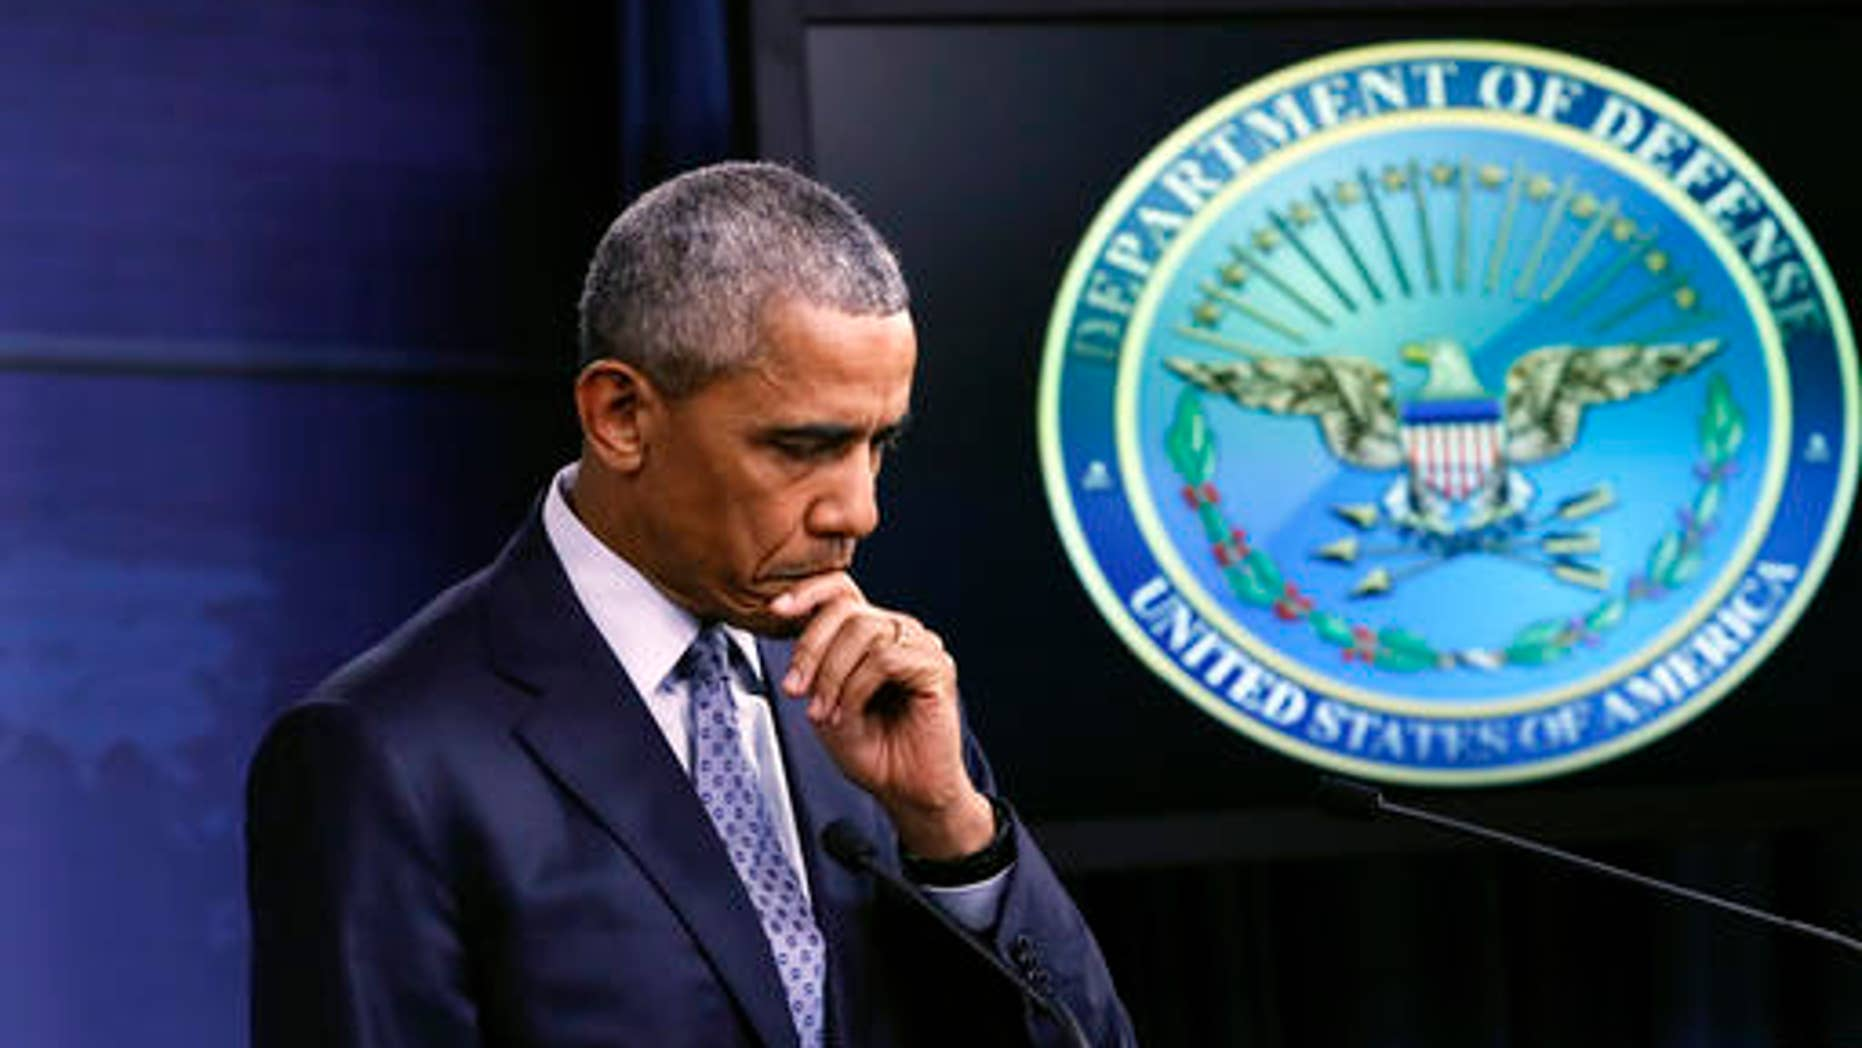 President Obama pauses during talk about the war on terrorism and efforts to degrade and destroy the Islamic State group, during a news conference at the Pentagon in Washington, D.C., on Aug. 4, 2016.